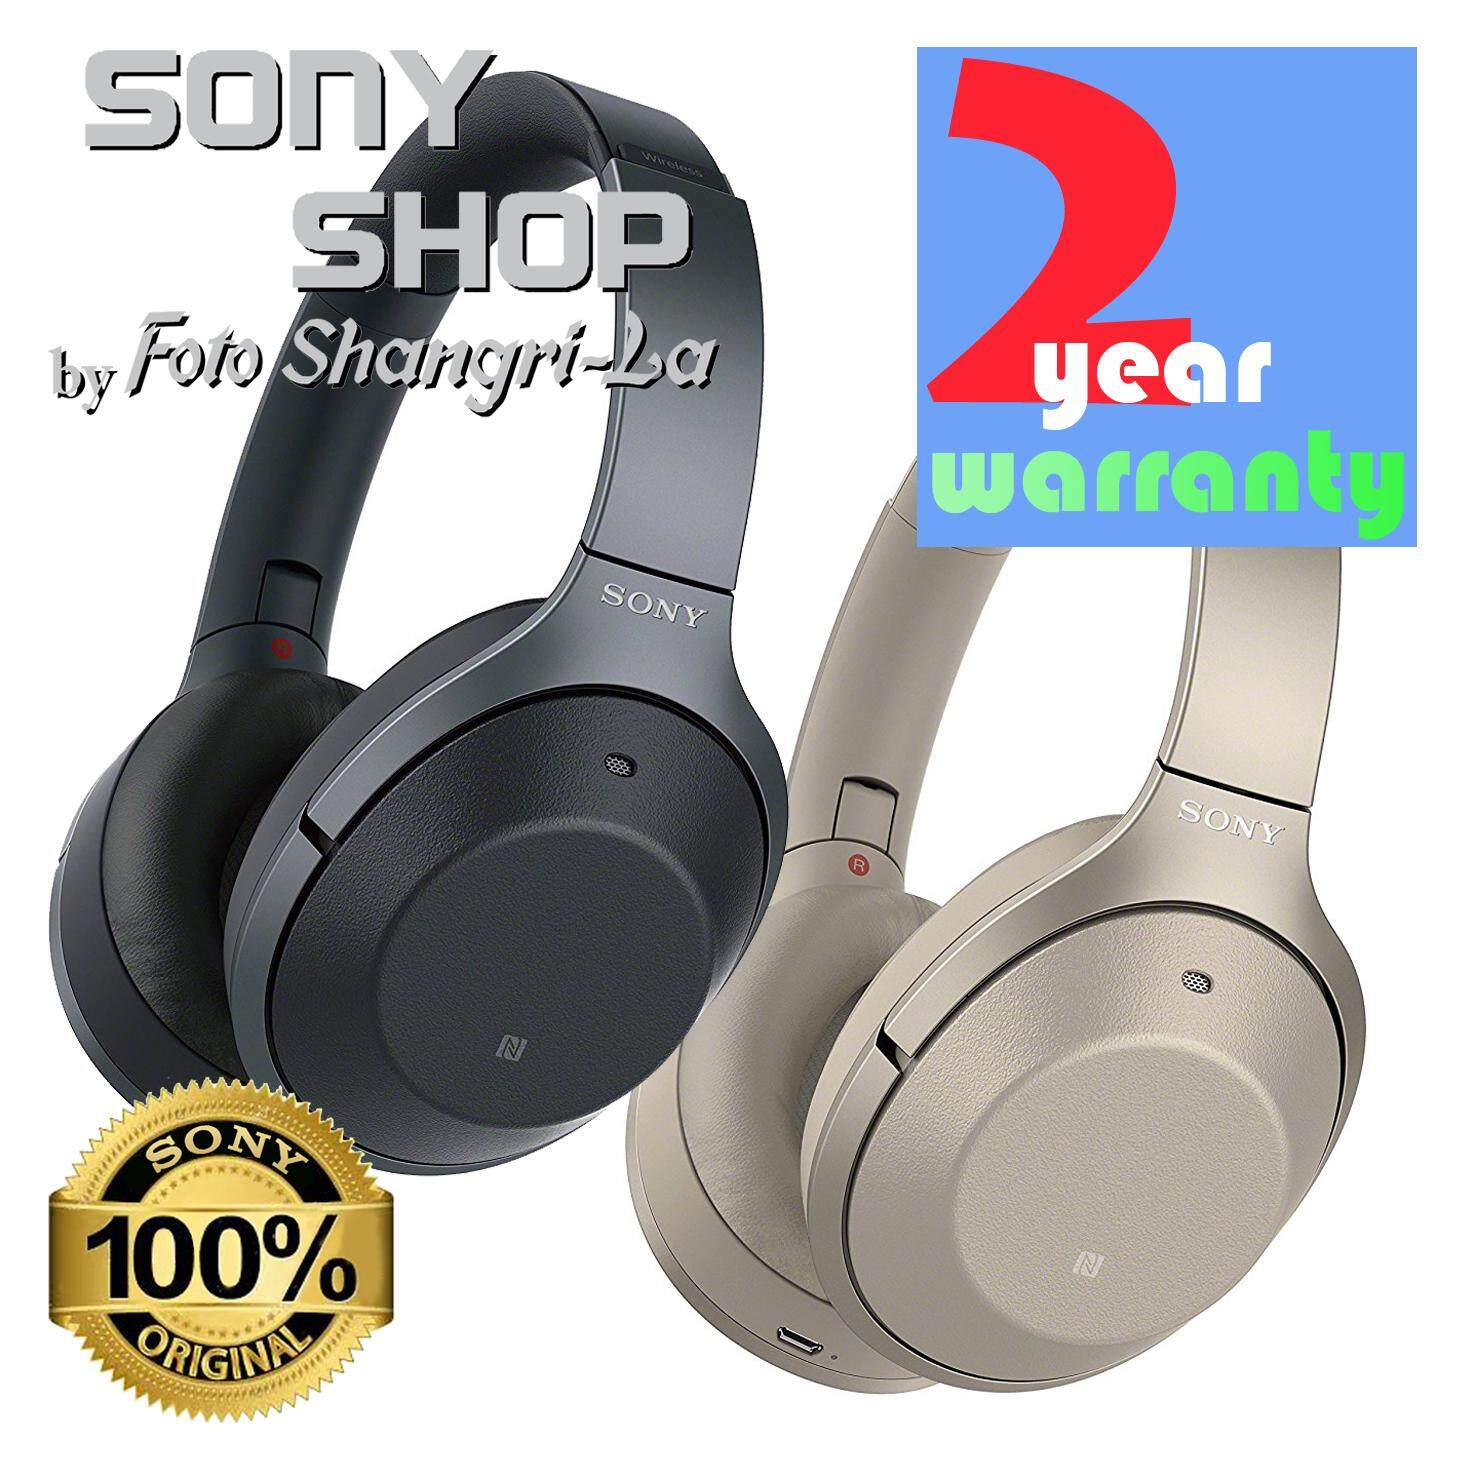 Sony Mdr Xb950n1 Noise Canceling Extra Bass Wireless Headphones Wh 1000xm2 Premium Cancelling Headphone 2 Years Original M